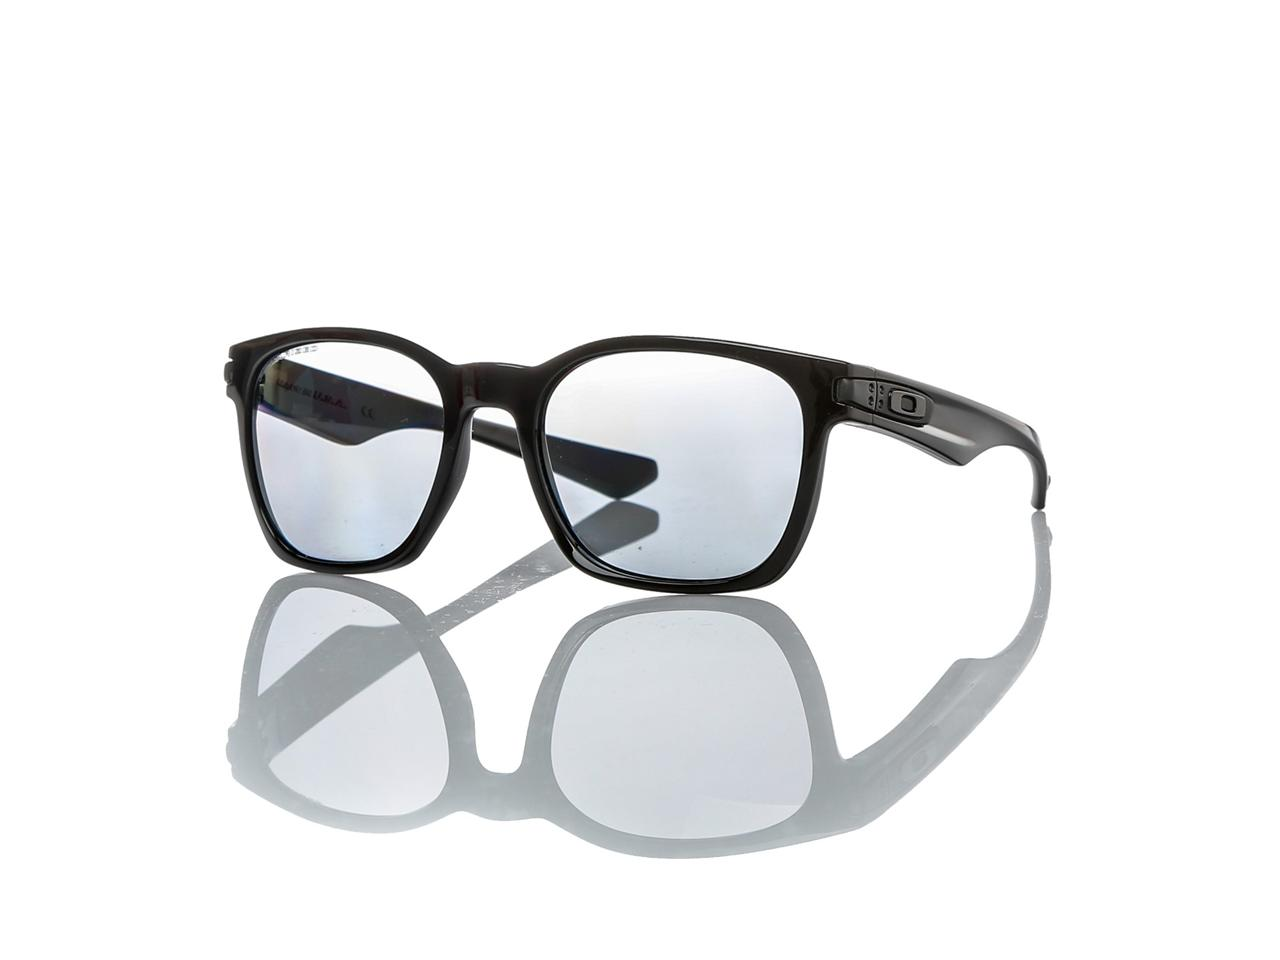 discount real oakley sunglasses w1ym  New-Authentic-Oakley-Sunglasses-Garage-Rock-9175-01